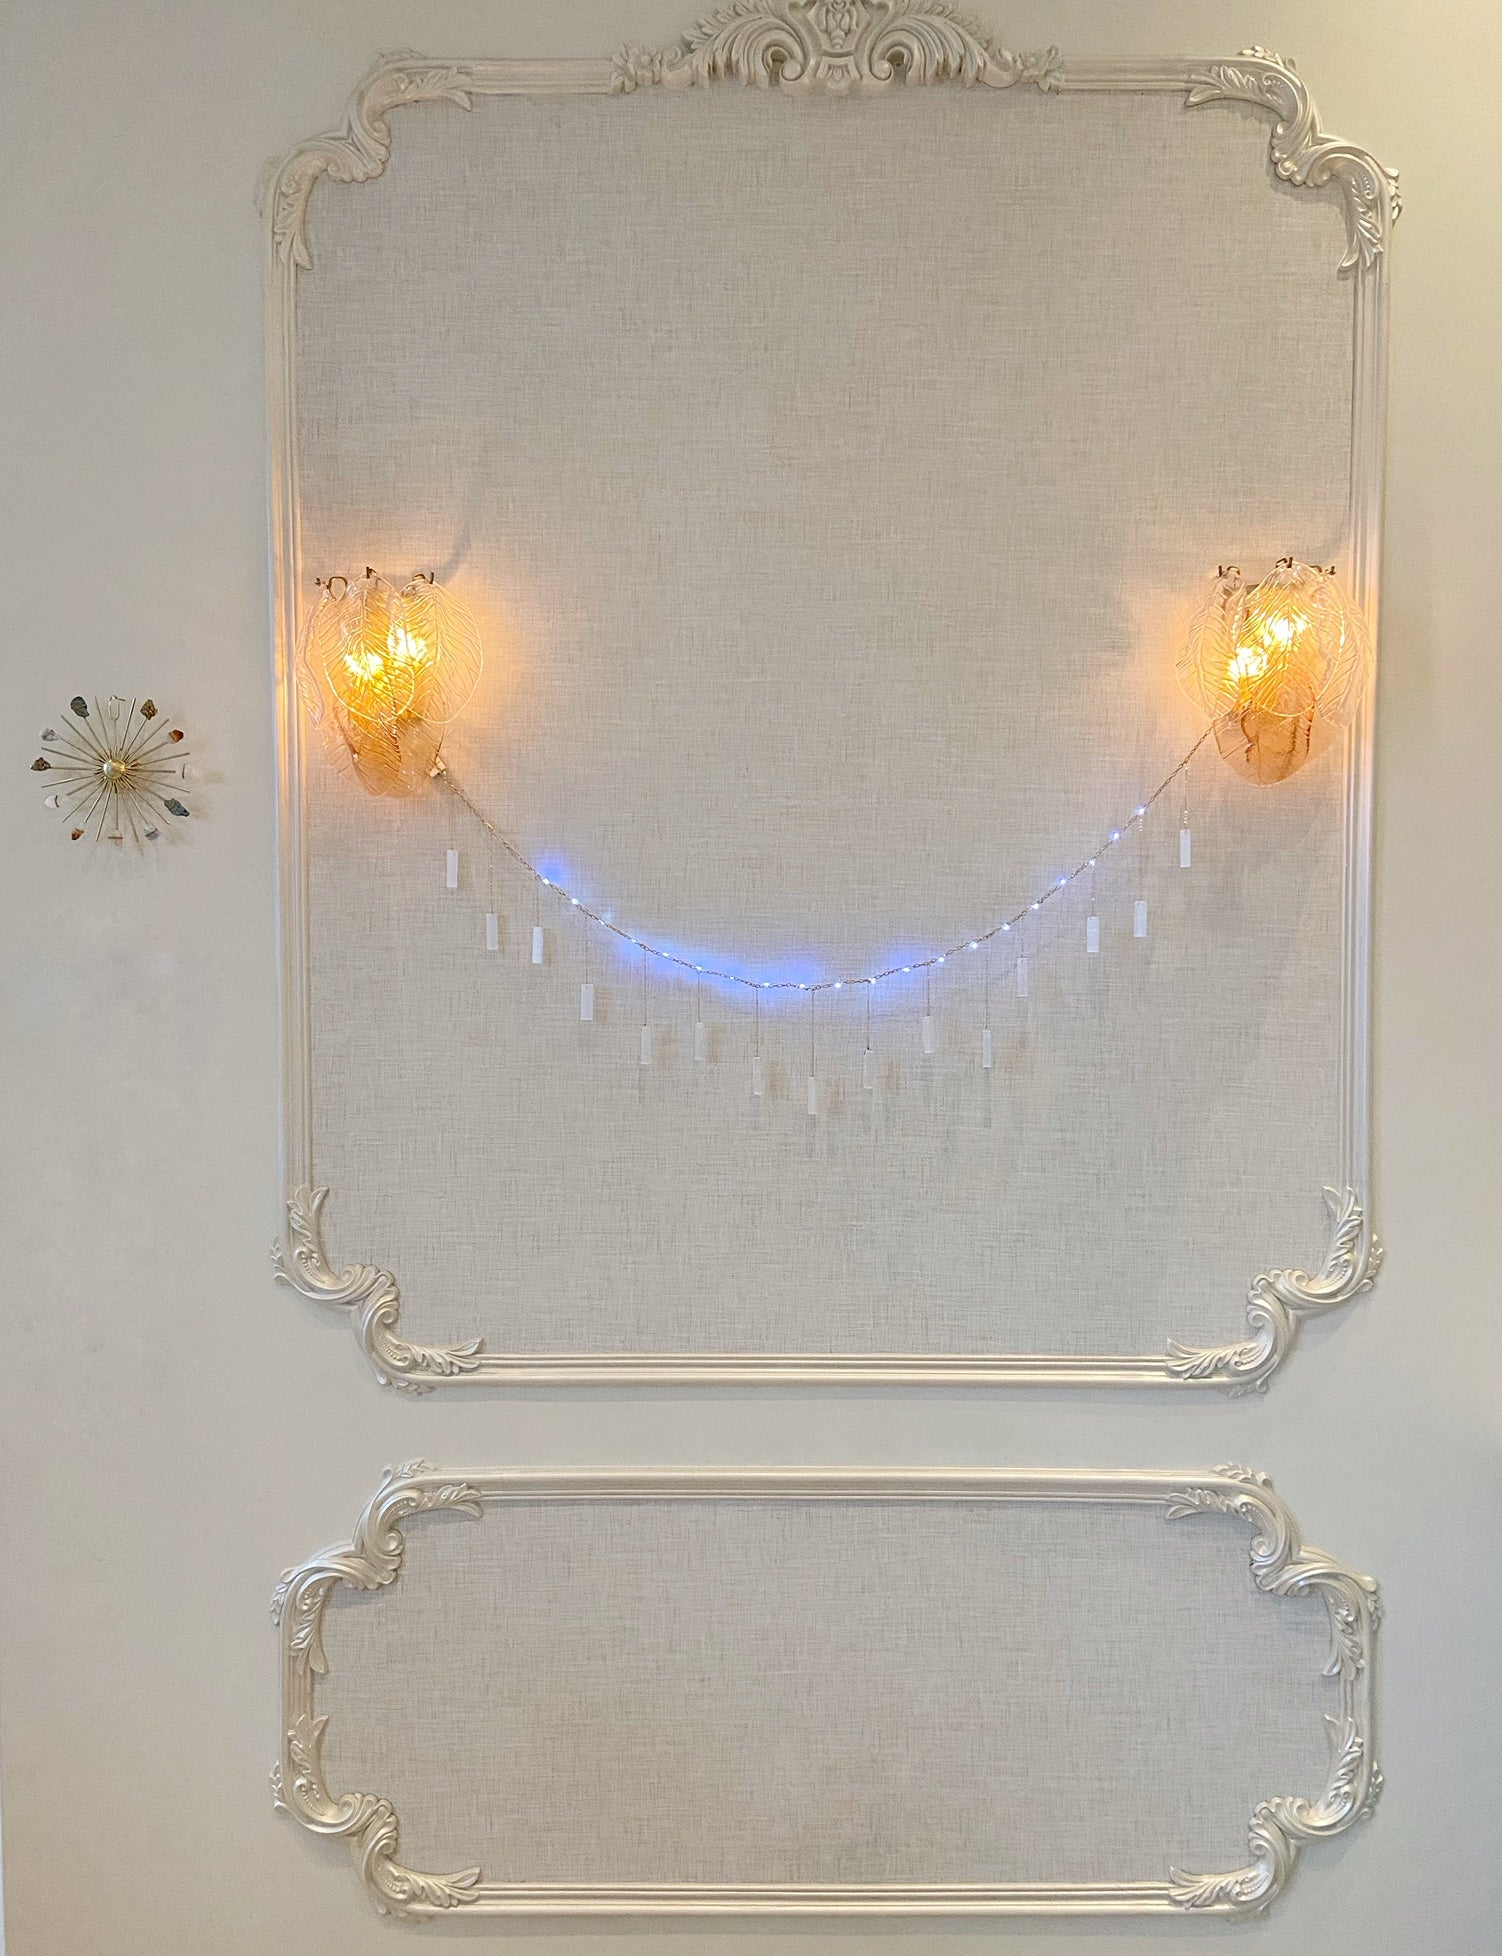 Selenite Garland with String Lighting